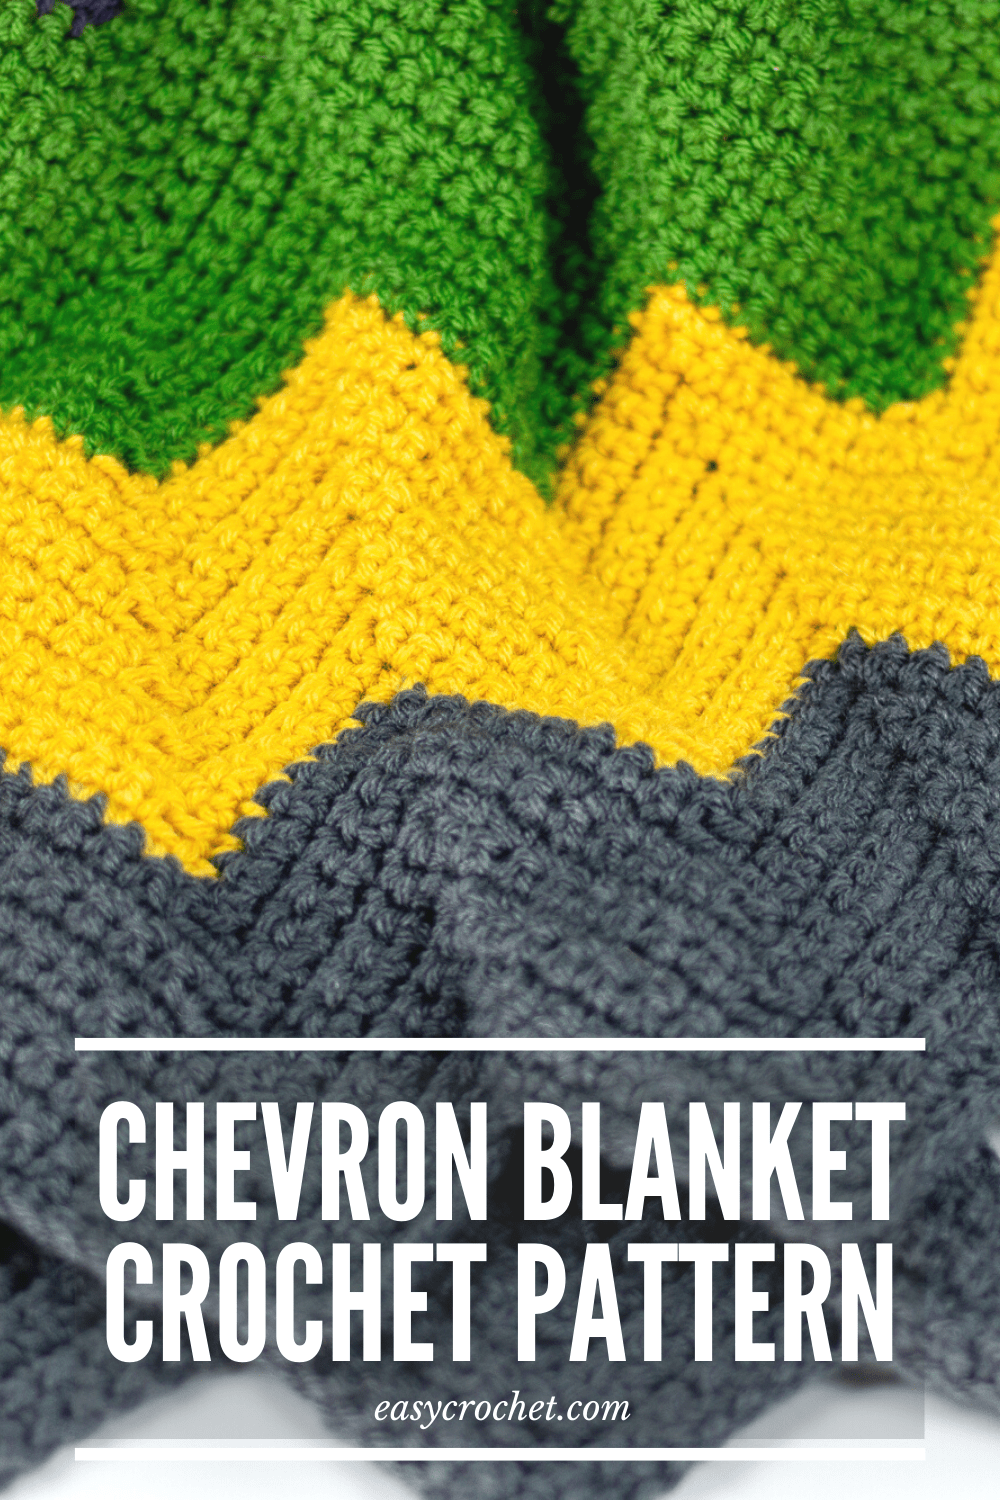 Free chevron crochet blanket pattern using bright and bold colors! Free crochet pattern from Easy Crochet via @easycrochetcom